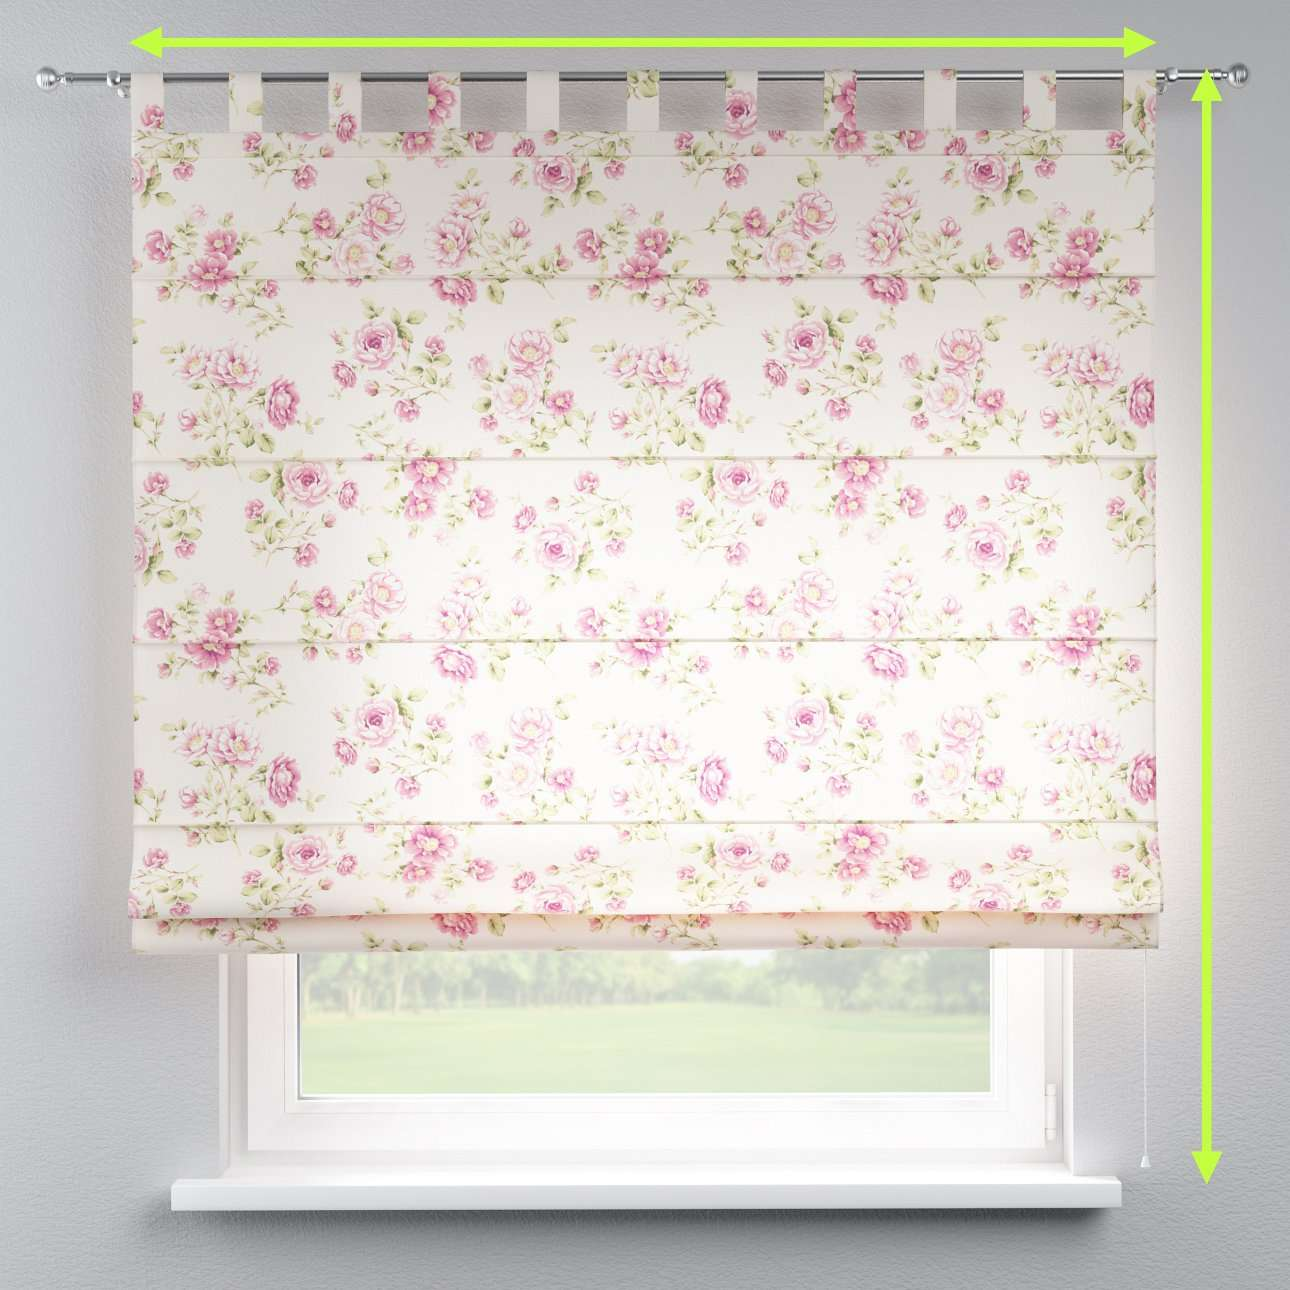 Verona tab top roman blind in collection Ashley, fabric: 137-43